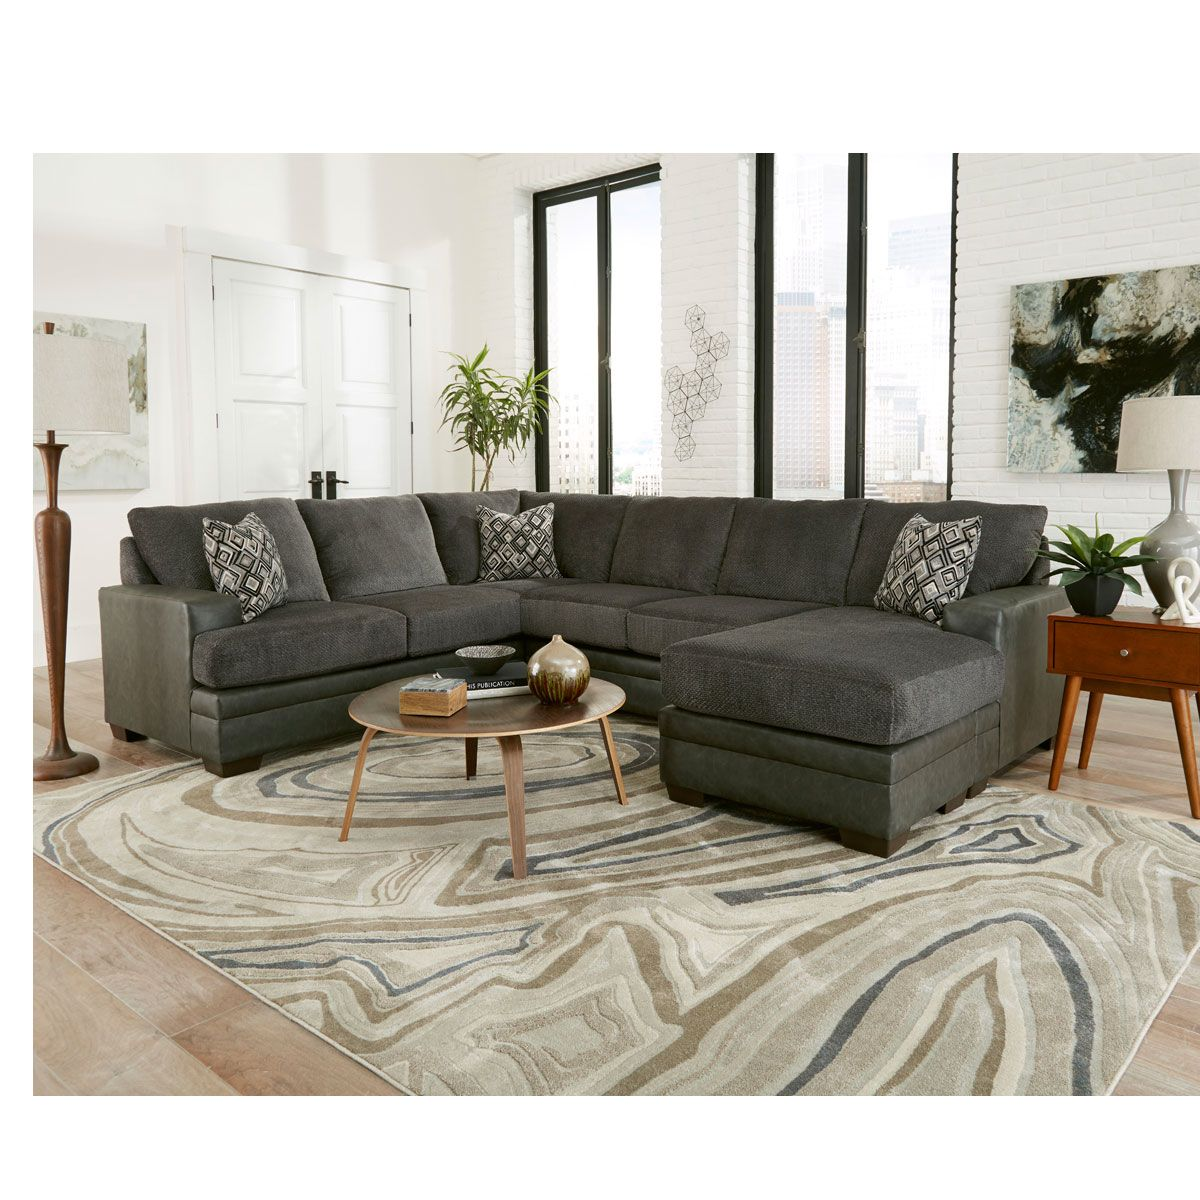 Plush Pewter Living Room Sectional Cook Brothers Charcoal Sectional Sectional Sofa Sectional Sofa Couch